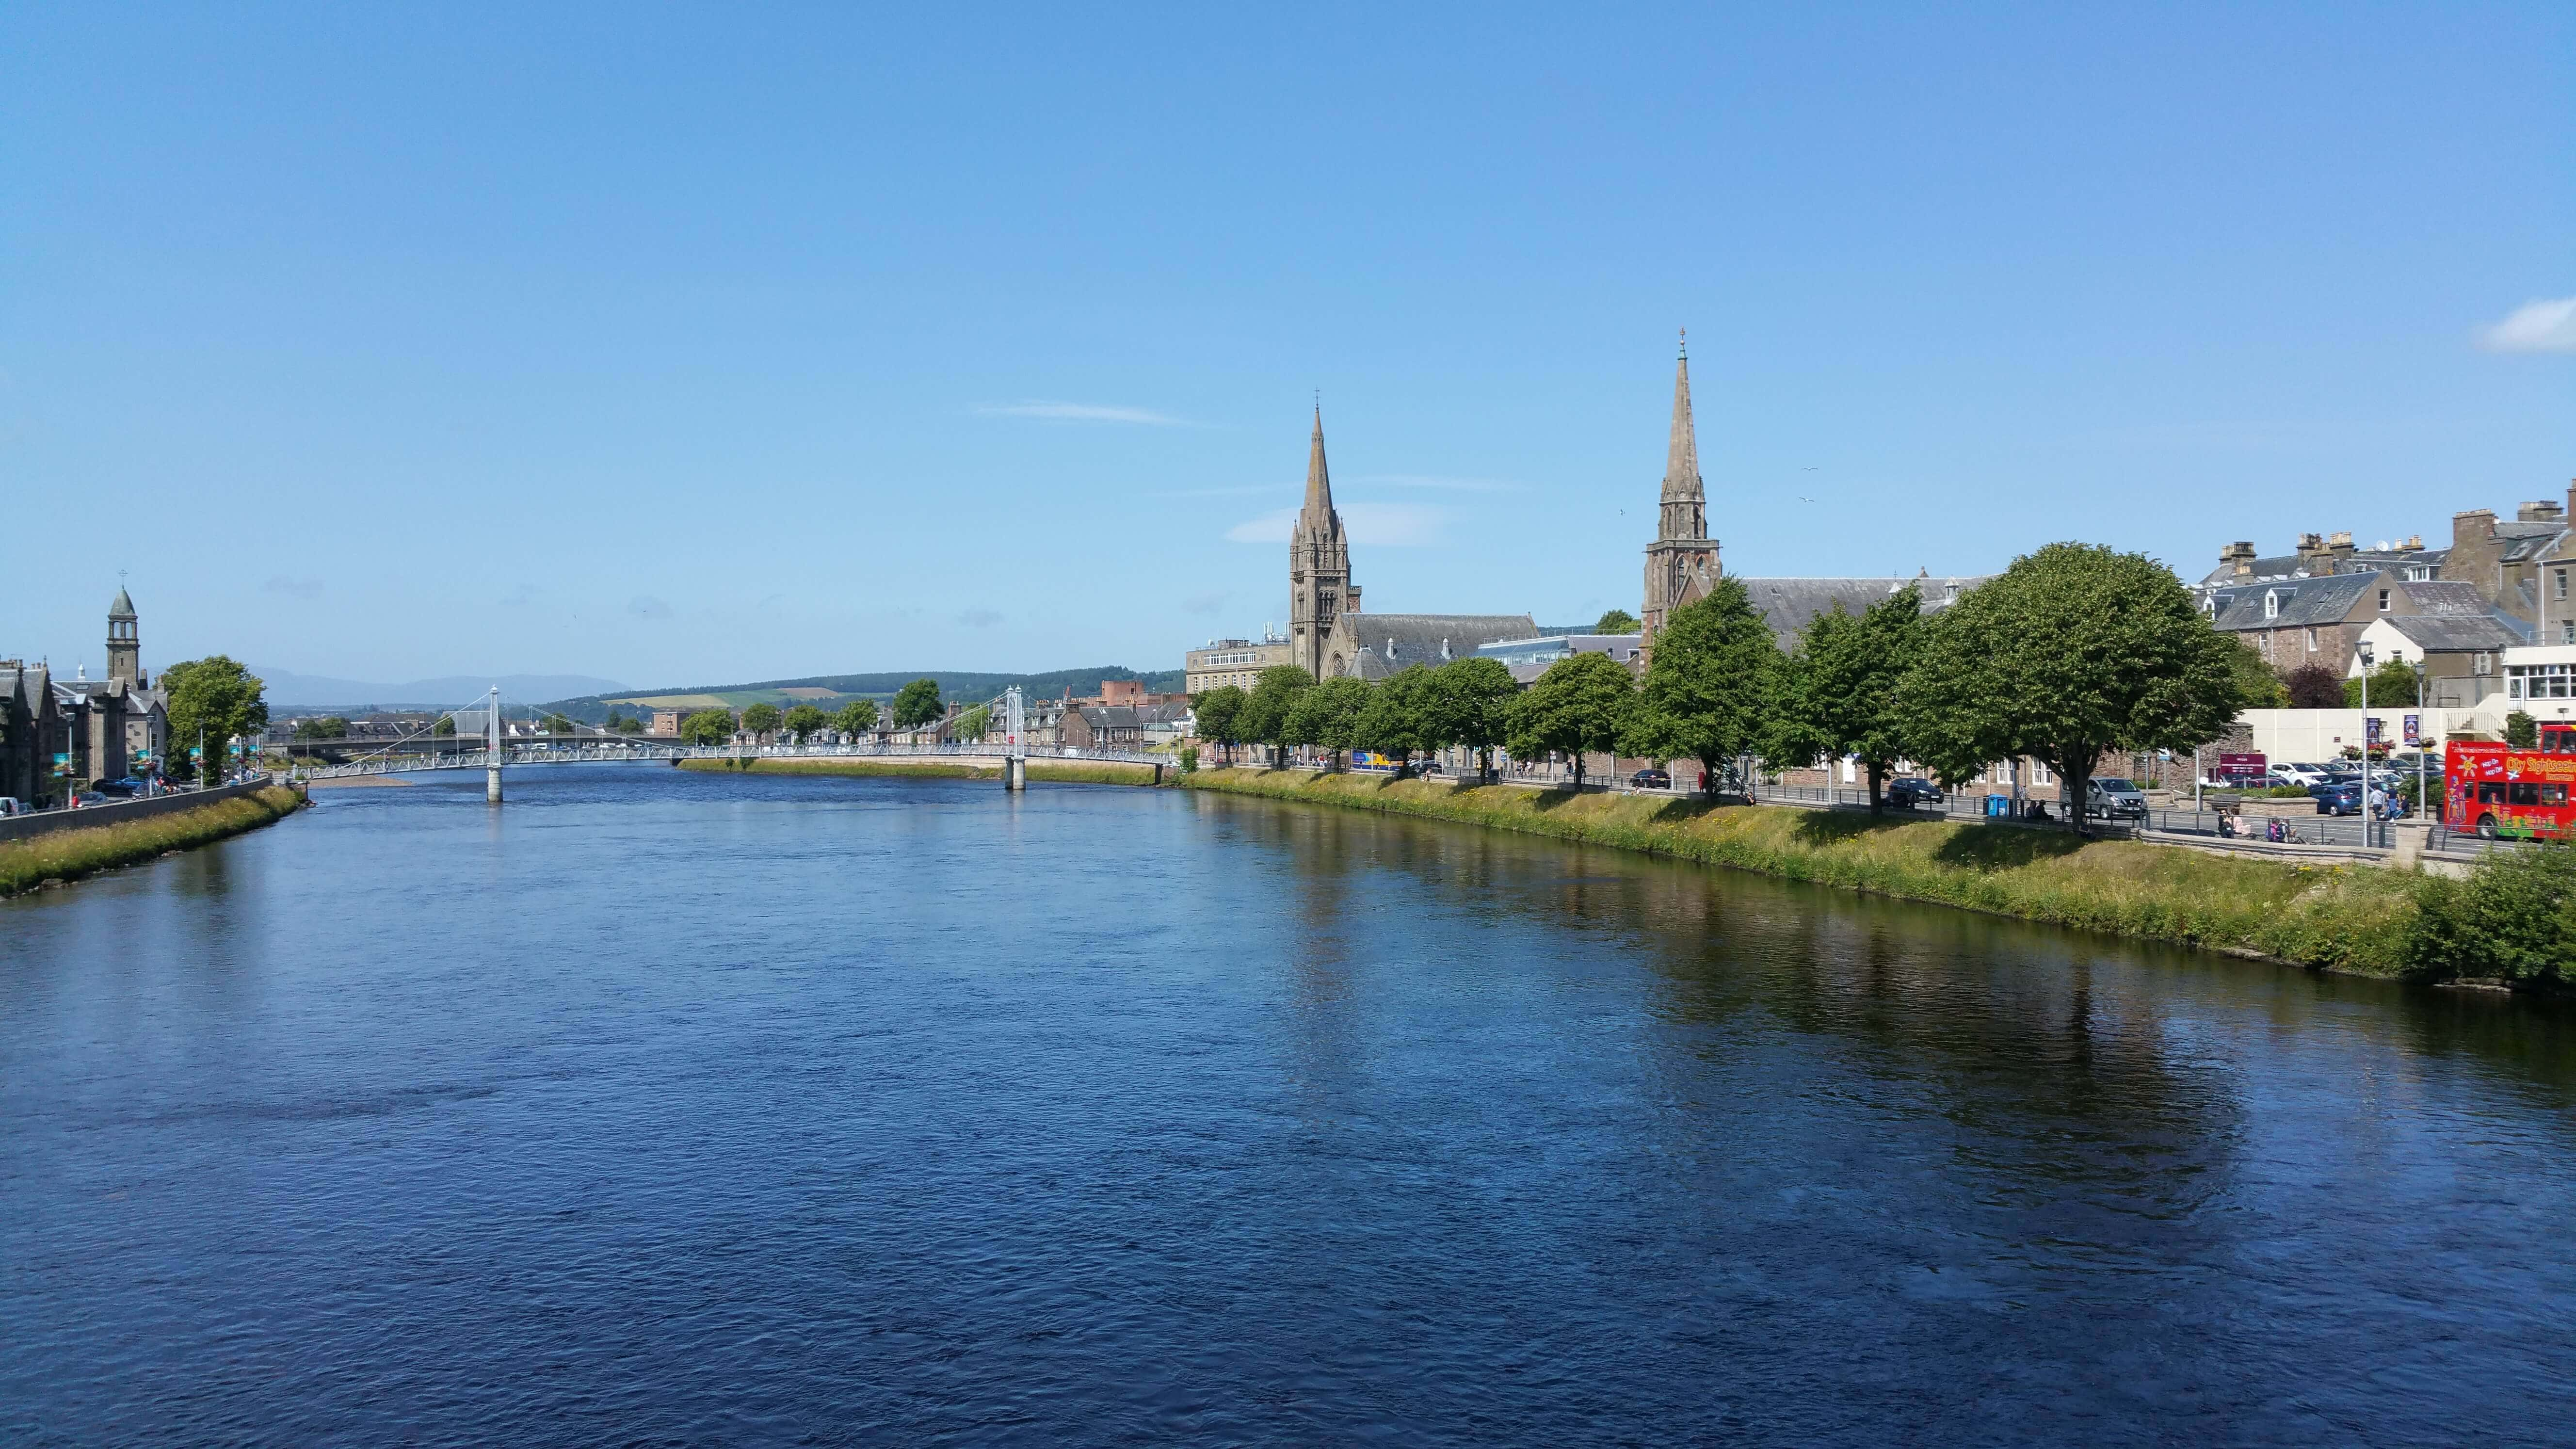 View looking down the River Ness